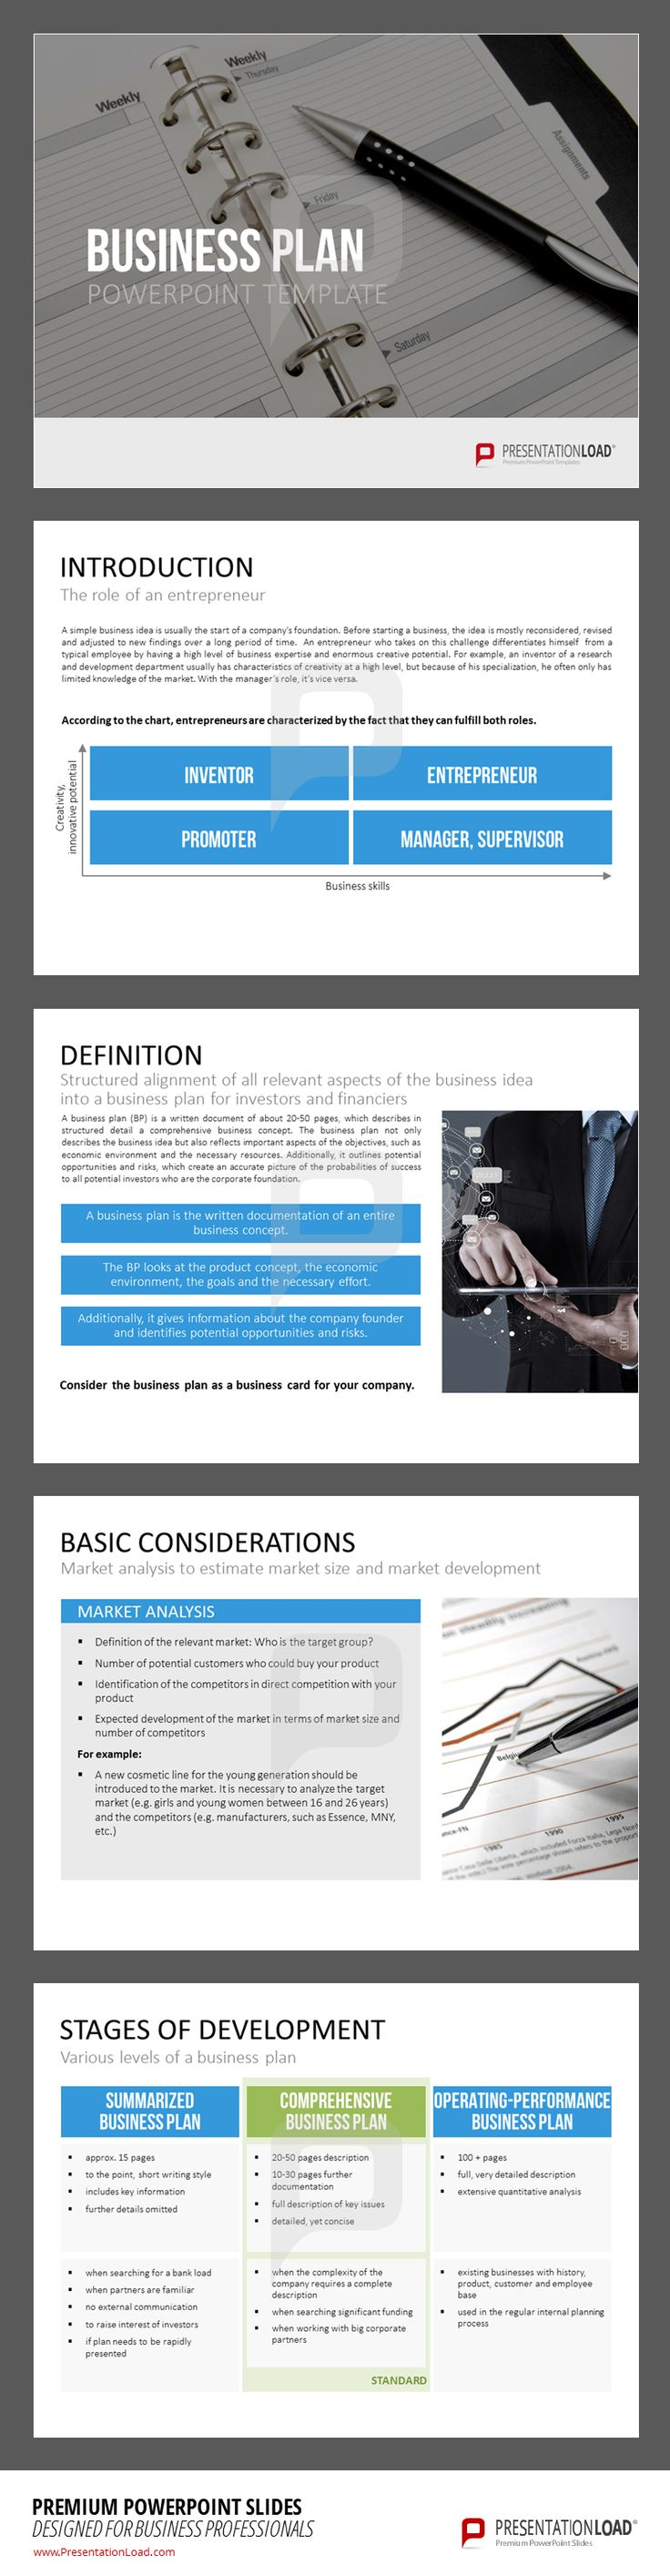 72 best business planning powerpoint templates images on benefit from our business plan powerpoint templates a simple business idea is usually the start pronofoot35fo Gallery